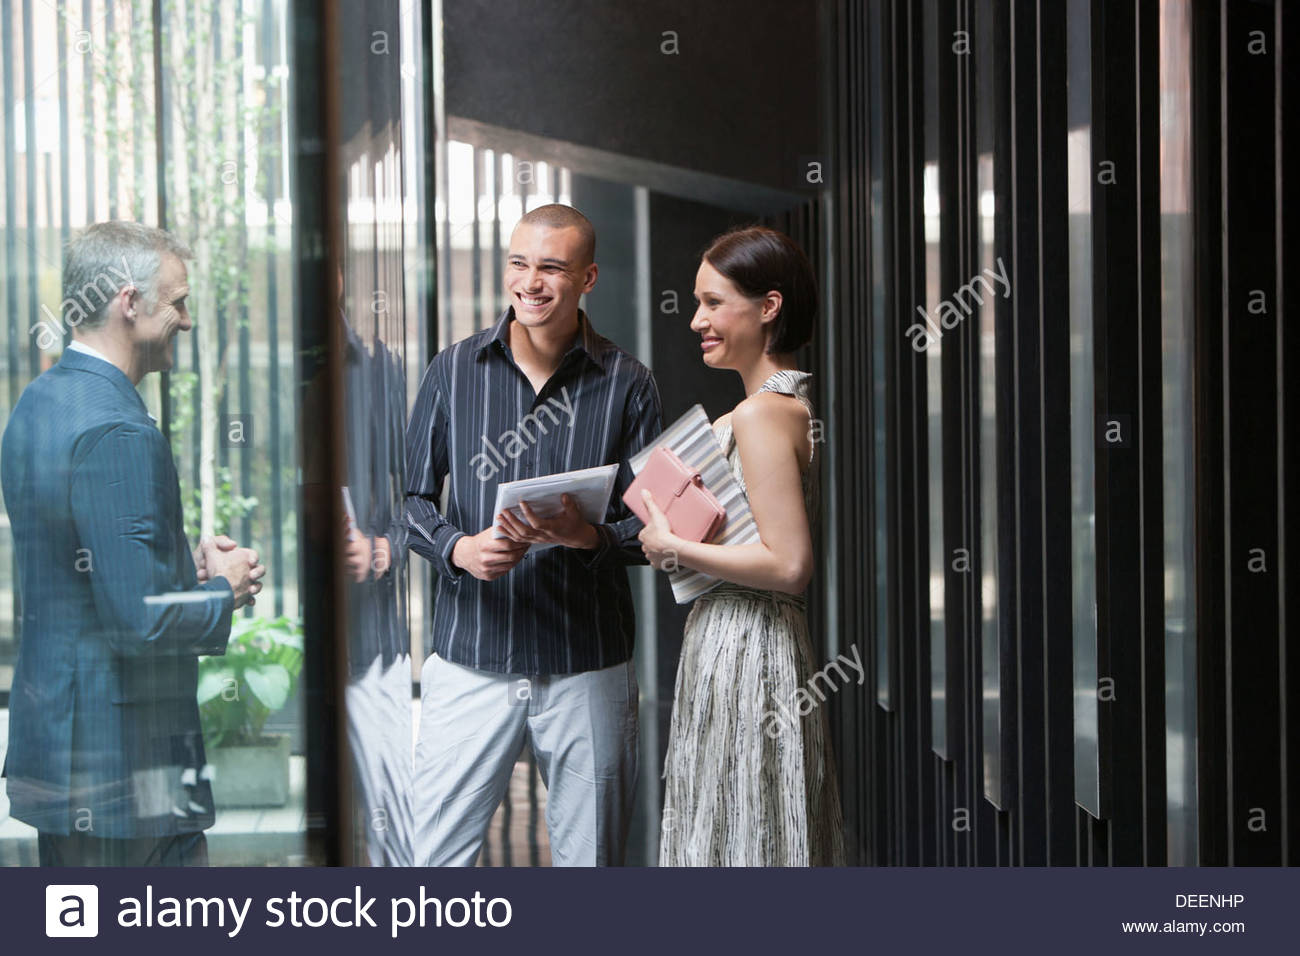 Three businesspeople in an office - Stock Image